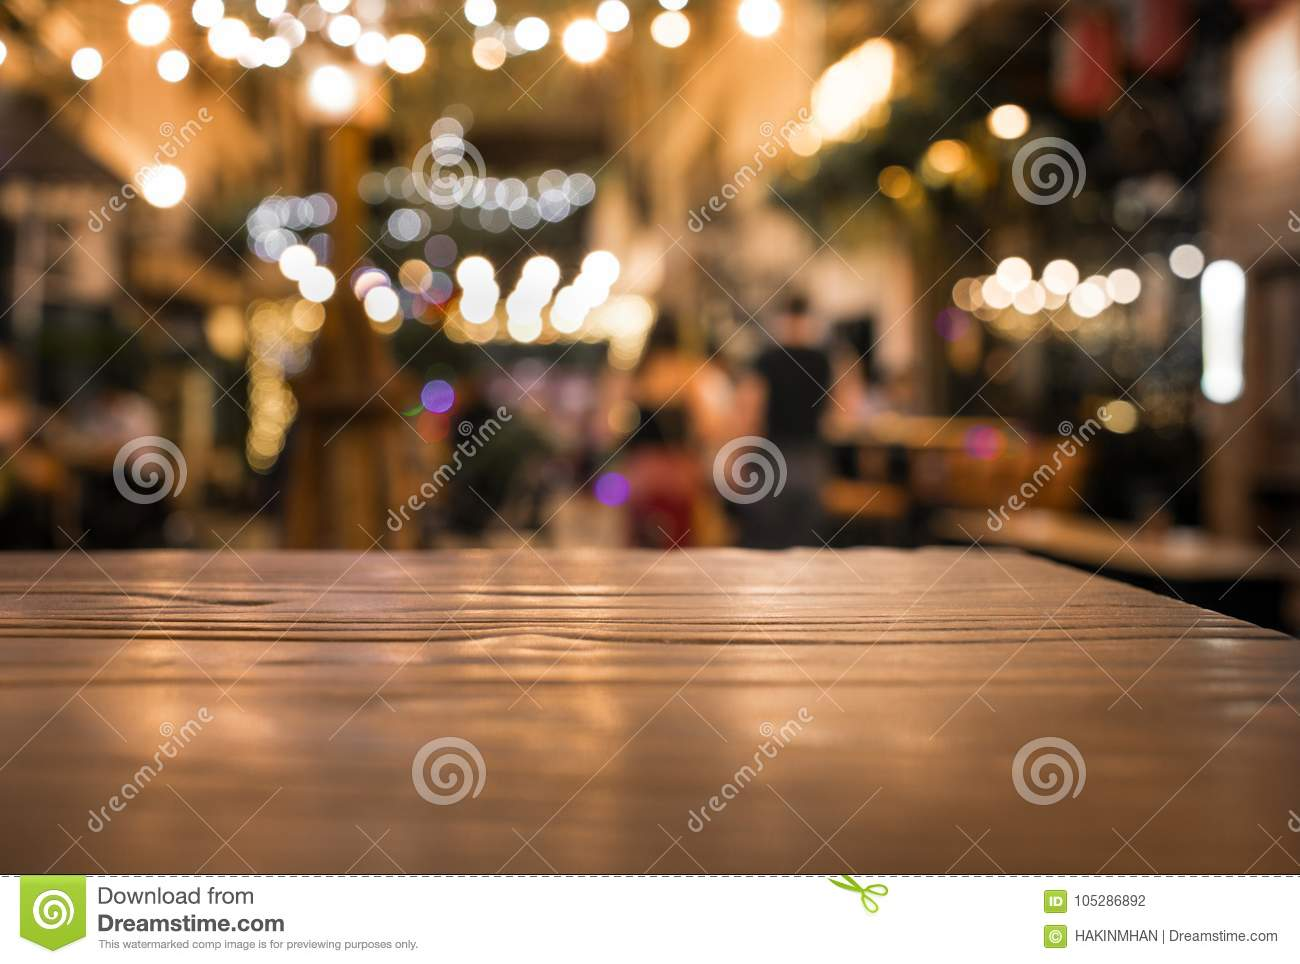 restaurant table top lighting. Royalty-Free Stock Photo Restaurant Table Top Lighting T